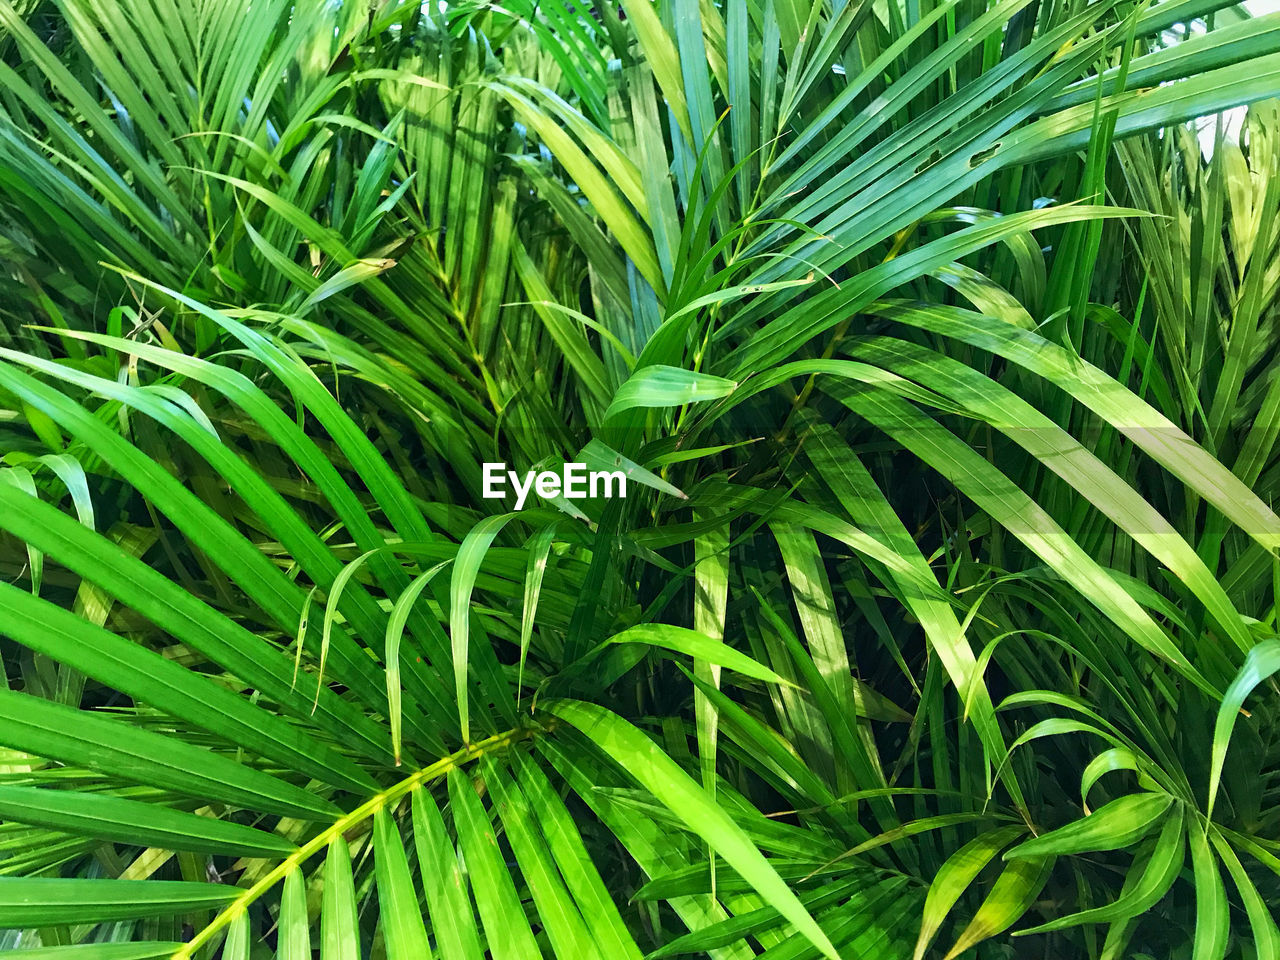 green color, growth, plant, leaf, plant part, beauty in nature, nature, close-up, day, backgrounds, no people, full frame, tranquility, outdoors, freshness, land, field, herb, grass, botany, palm leaf, blade of grass